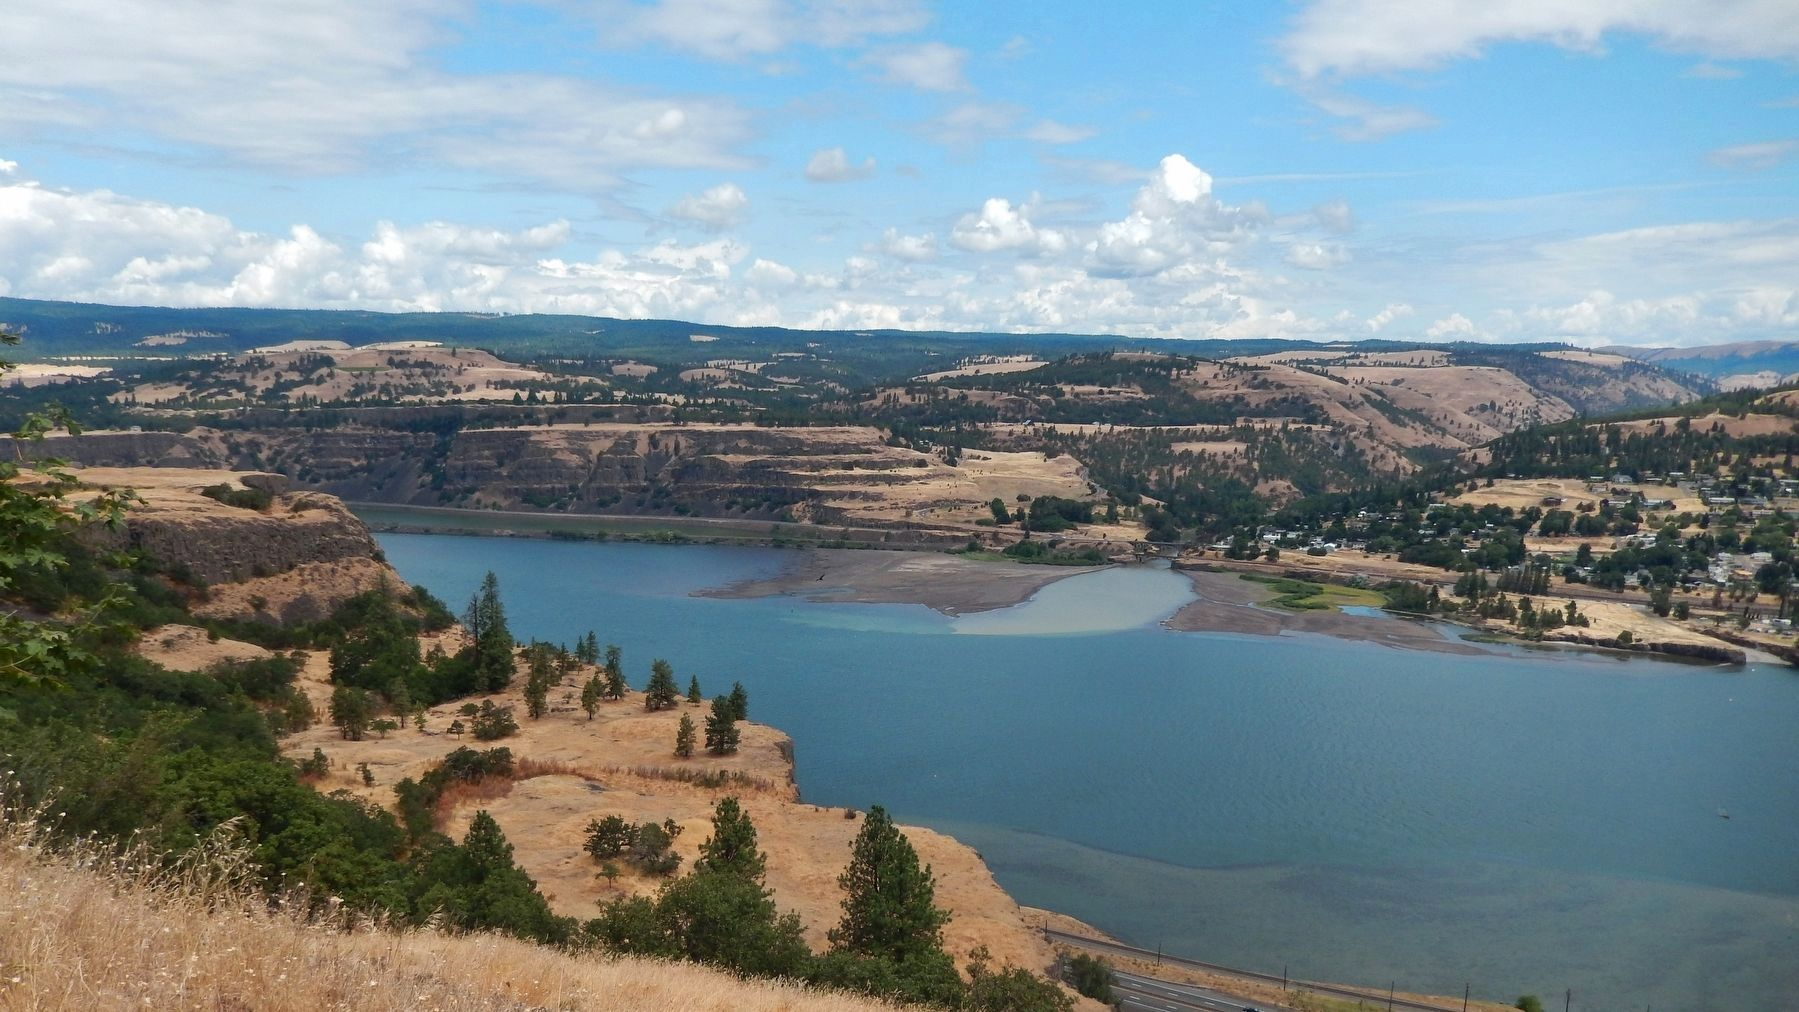 Columbia River Gorge (<i>view northwest from marker</i>) image. Click for full size.